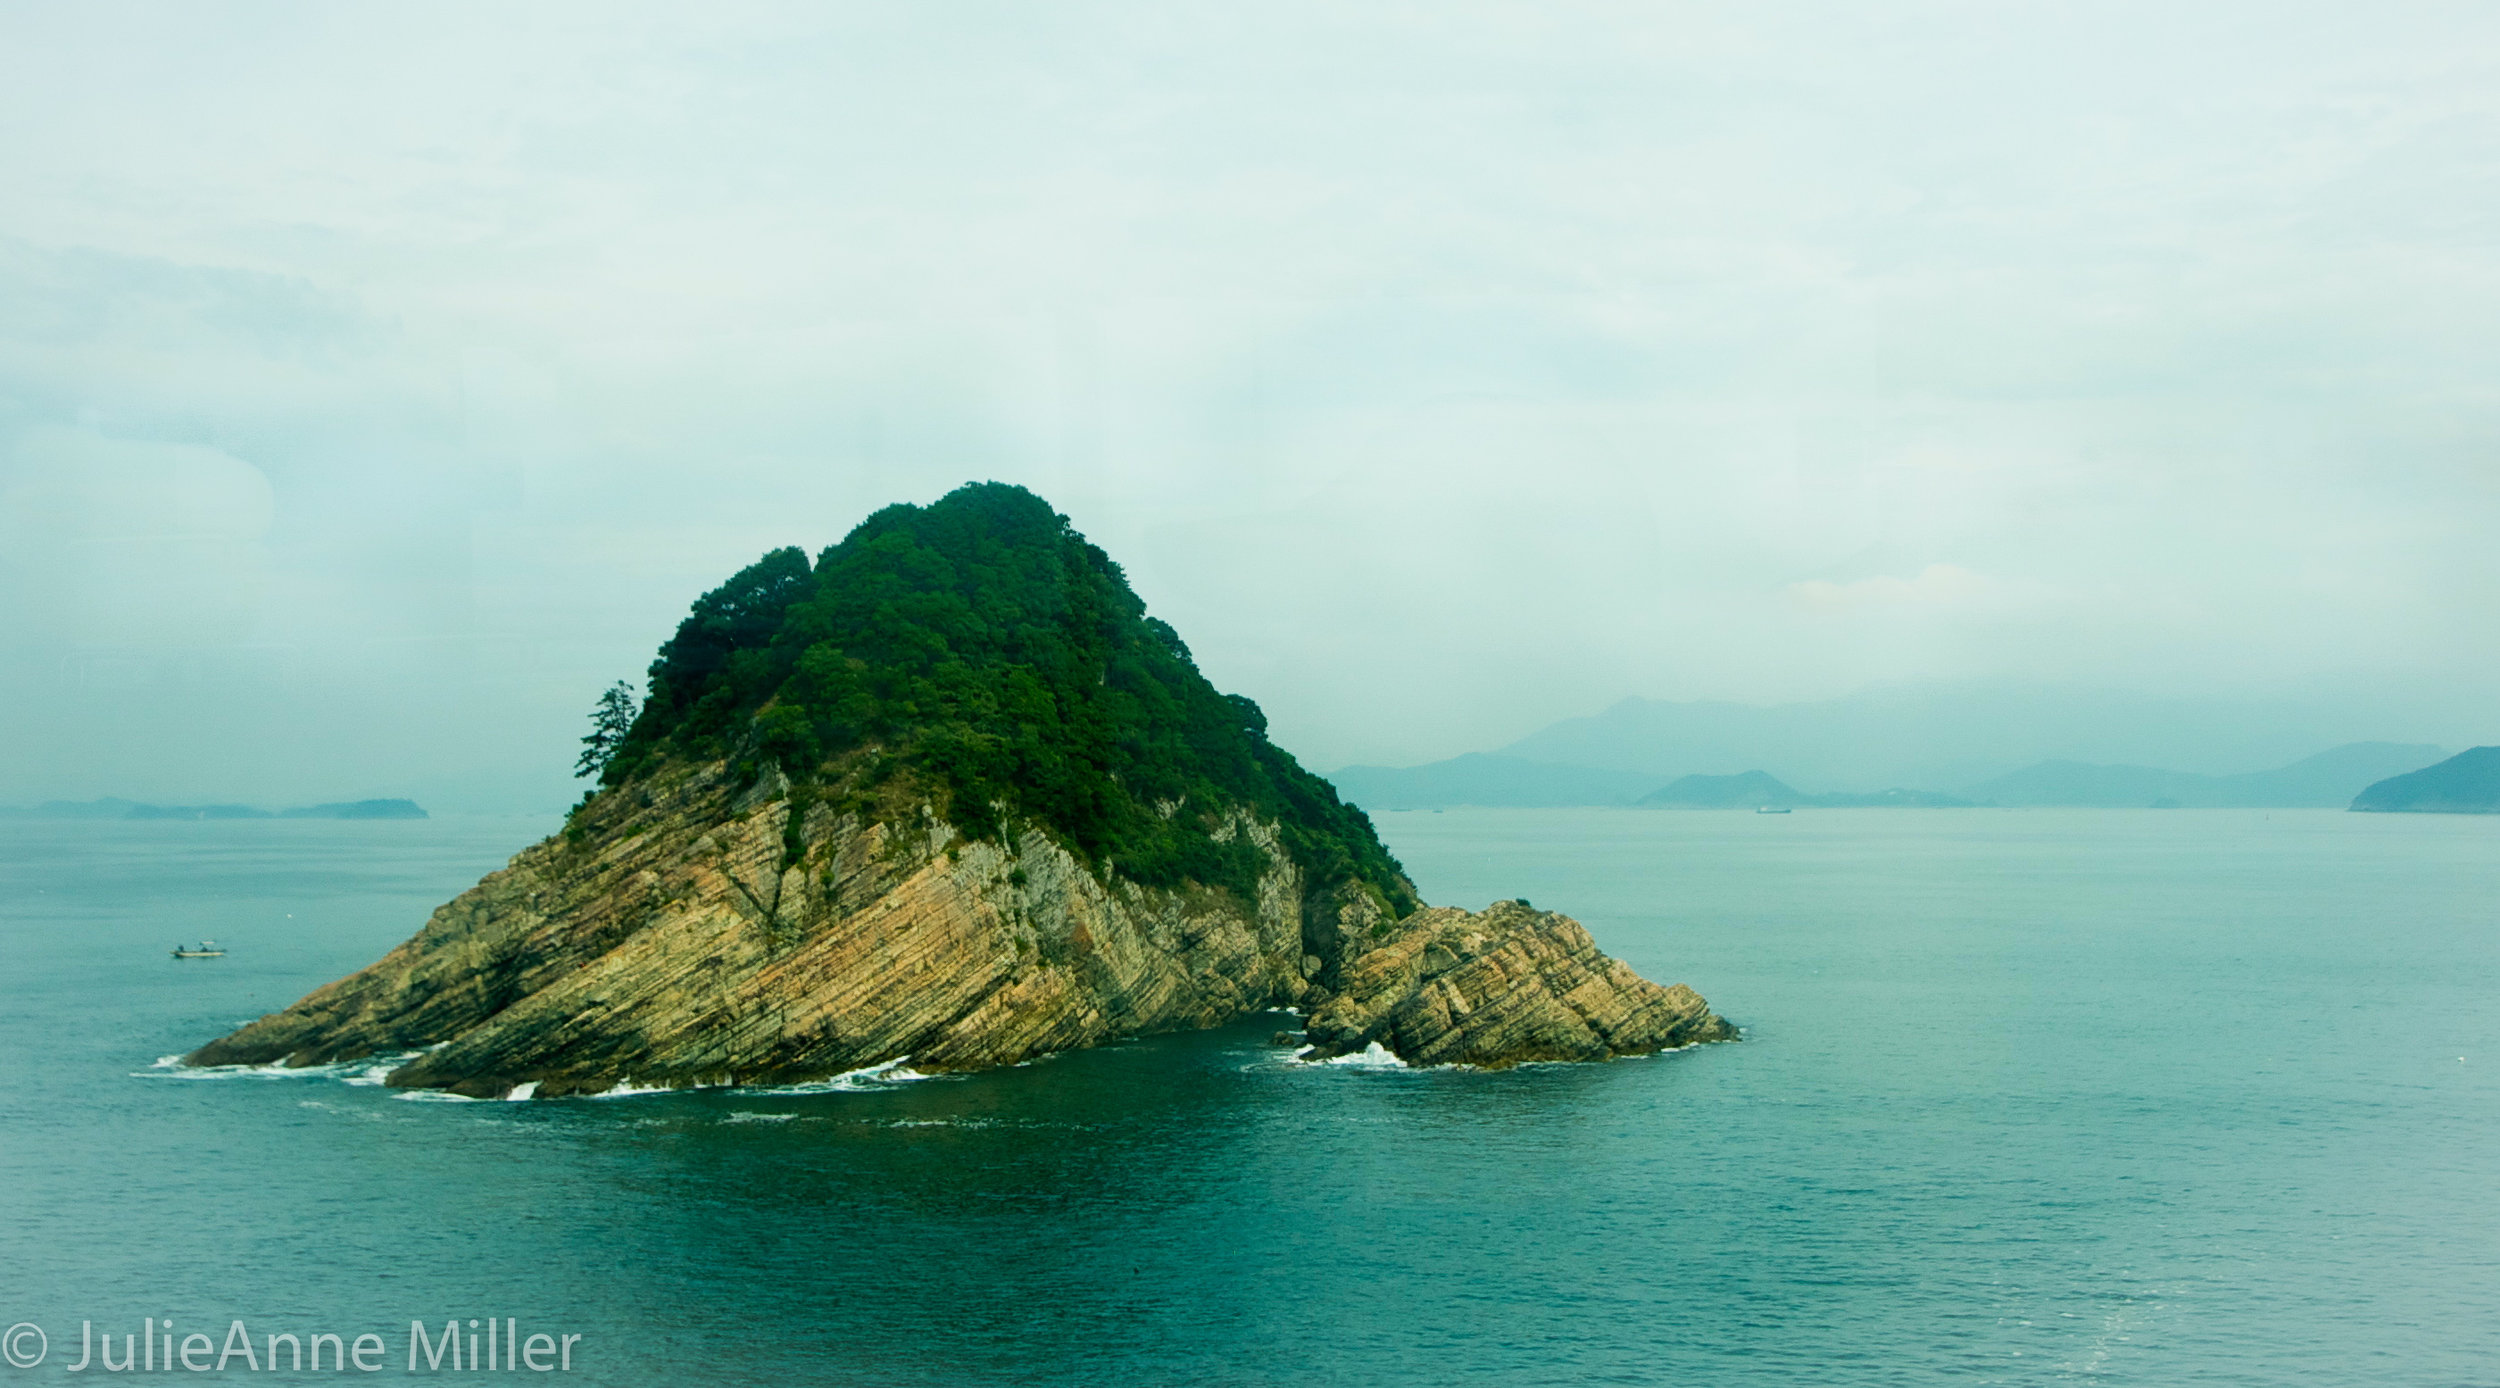 Geoje, South Korea